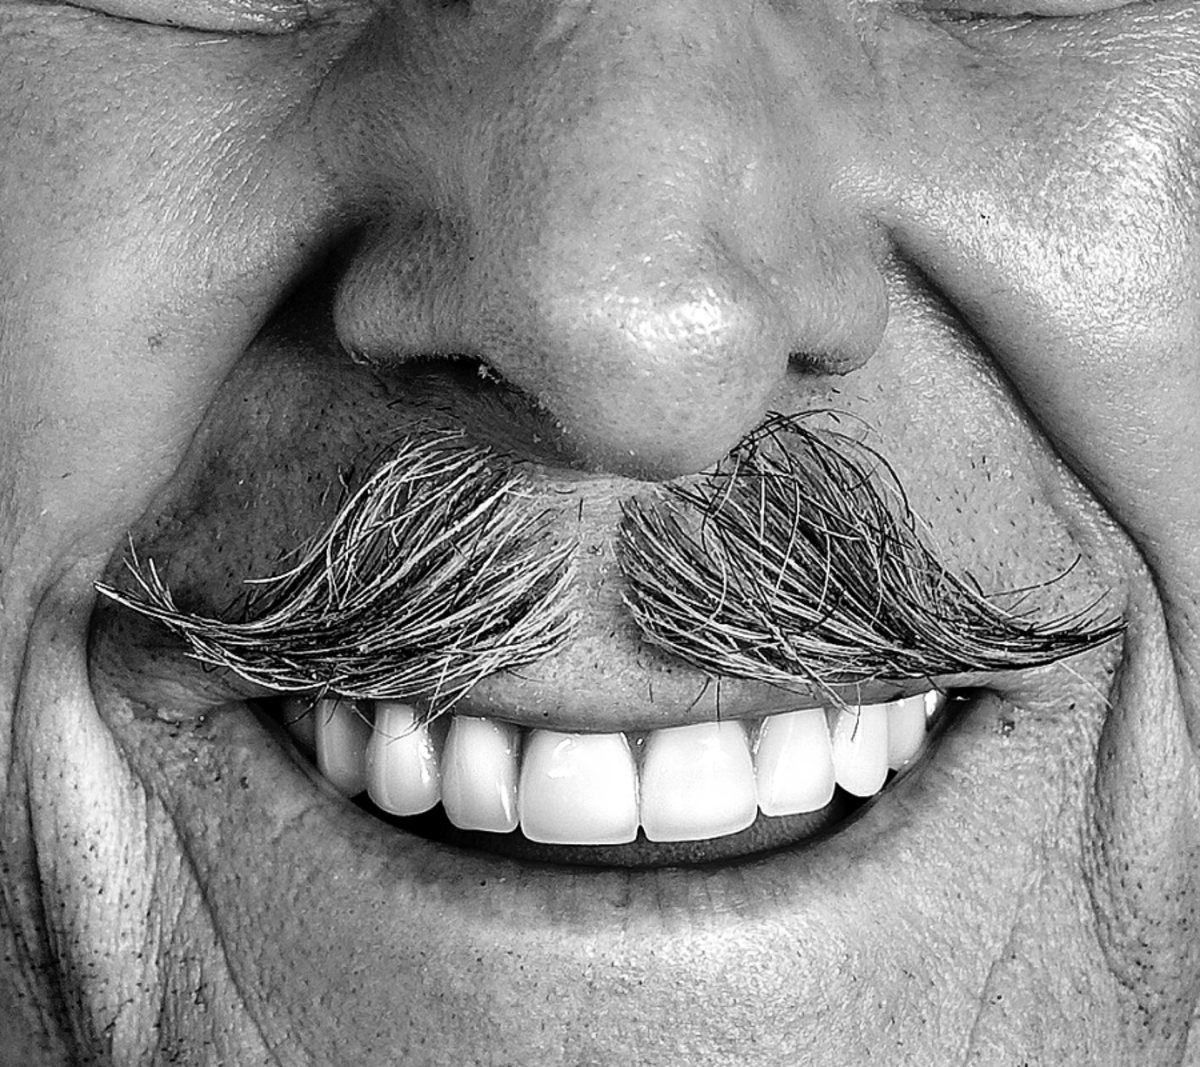 A dream of dentures or false teeth might indicate feelings of impotence, false impressions in general, or that you've lied or said something that is untrue.